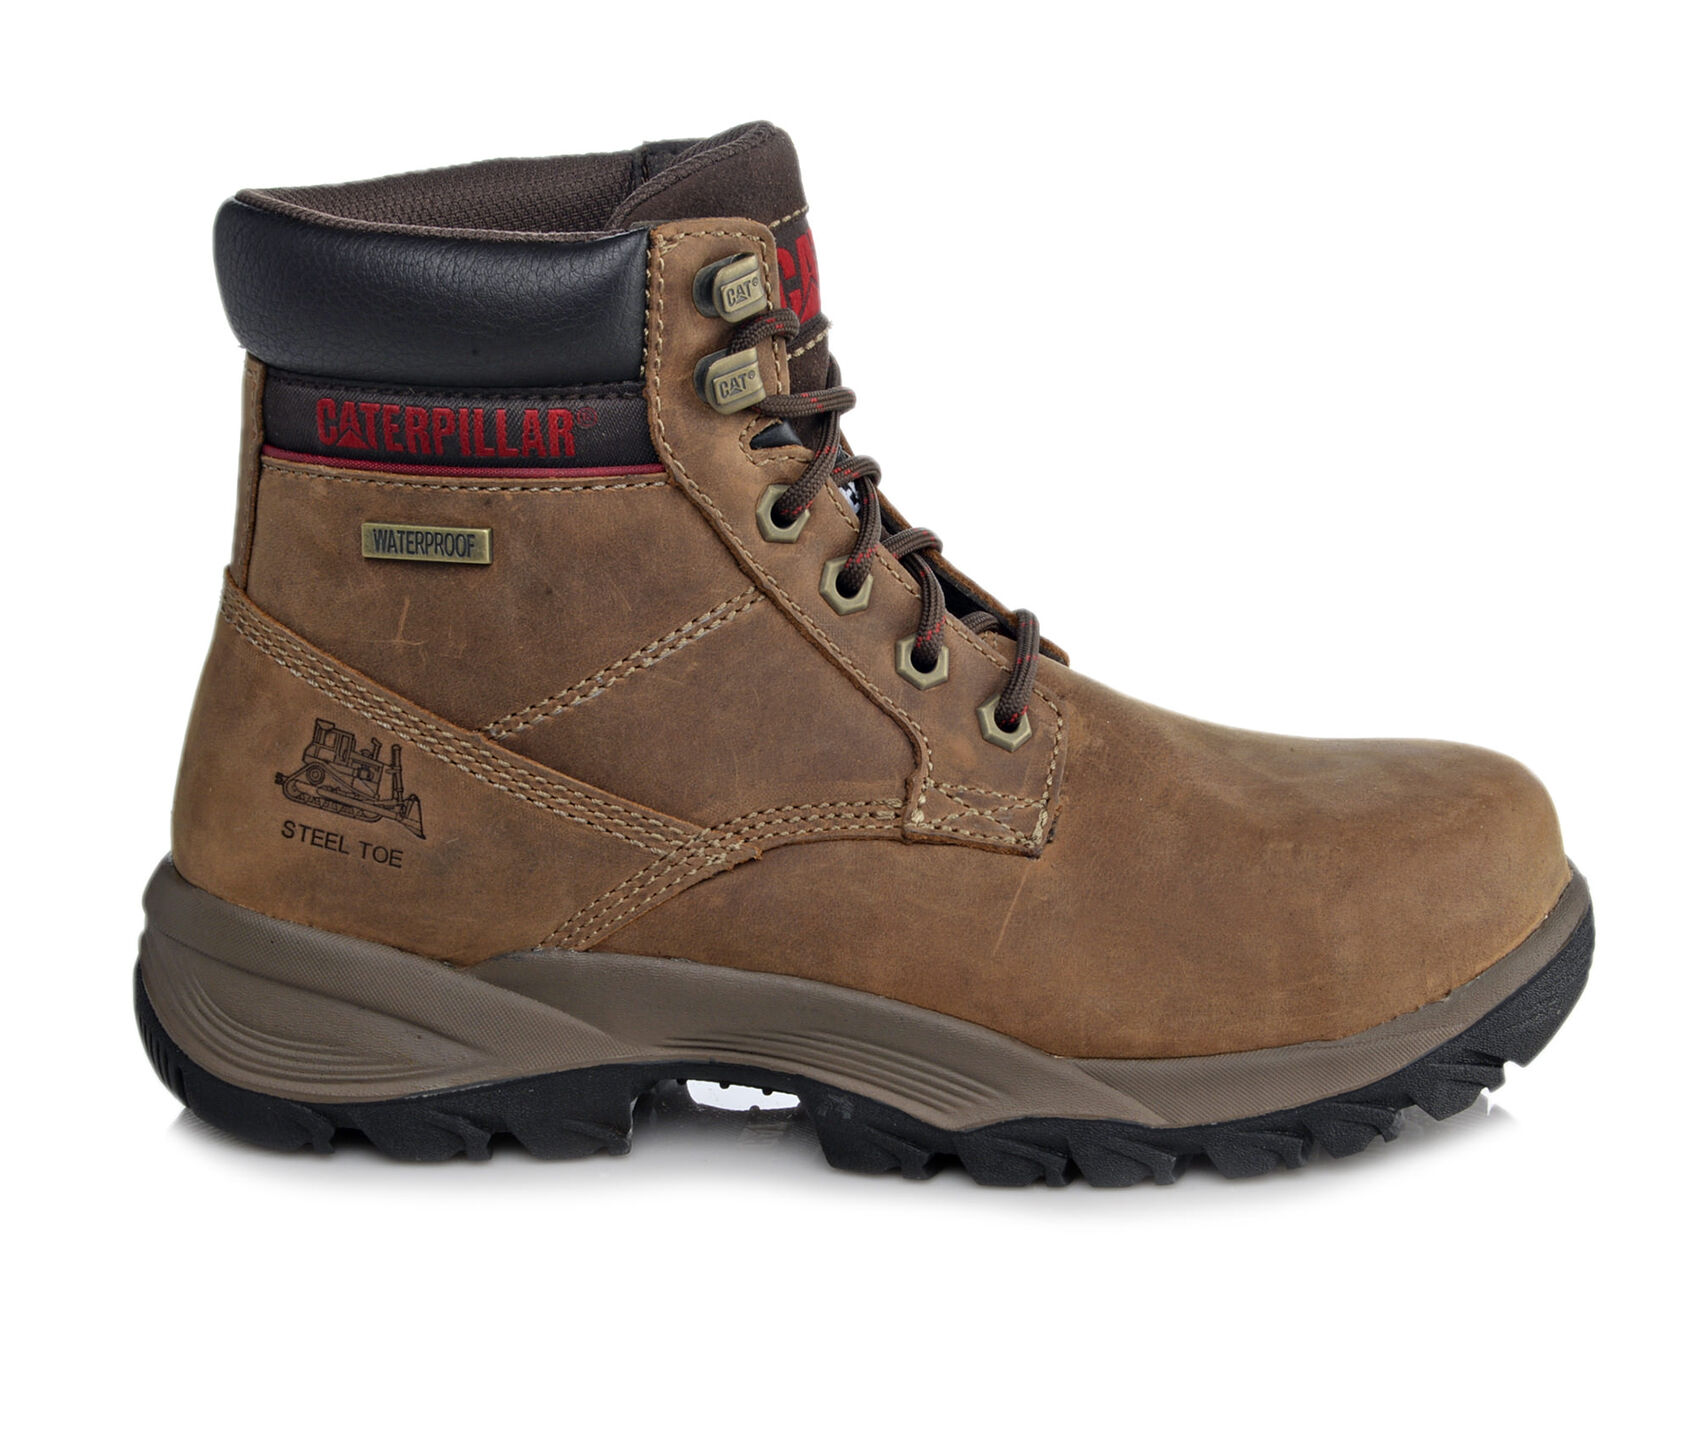 Caterpillar Safety Shoes Womens